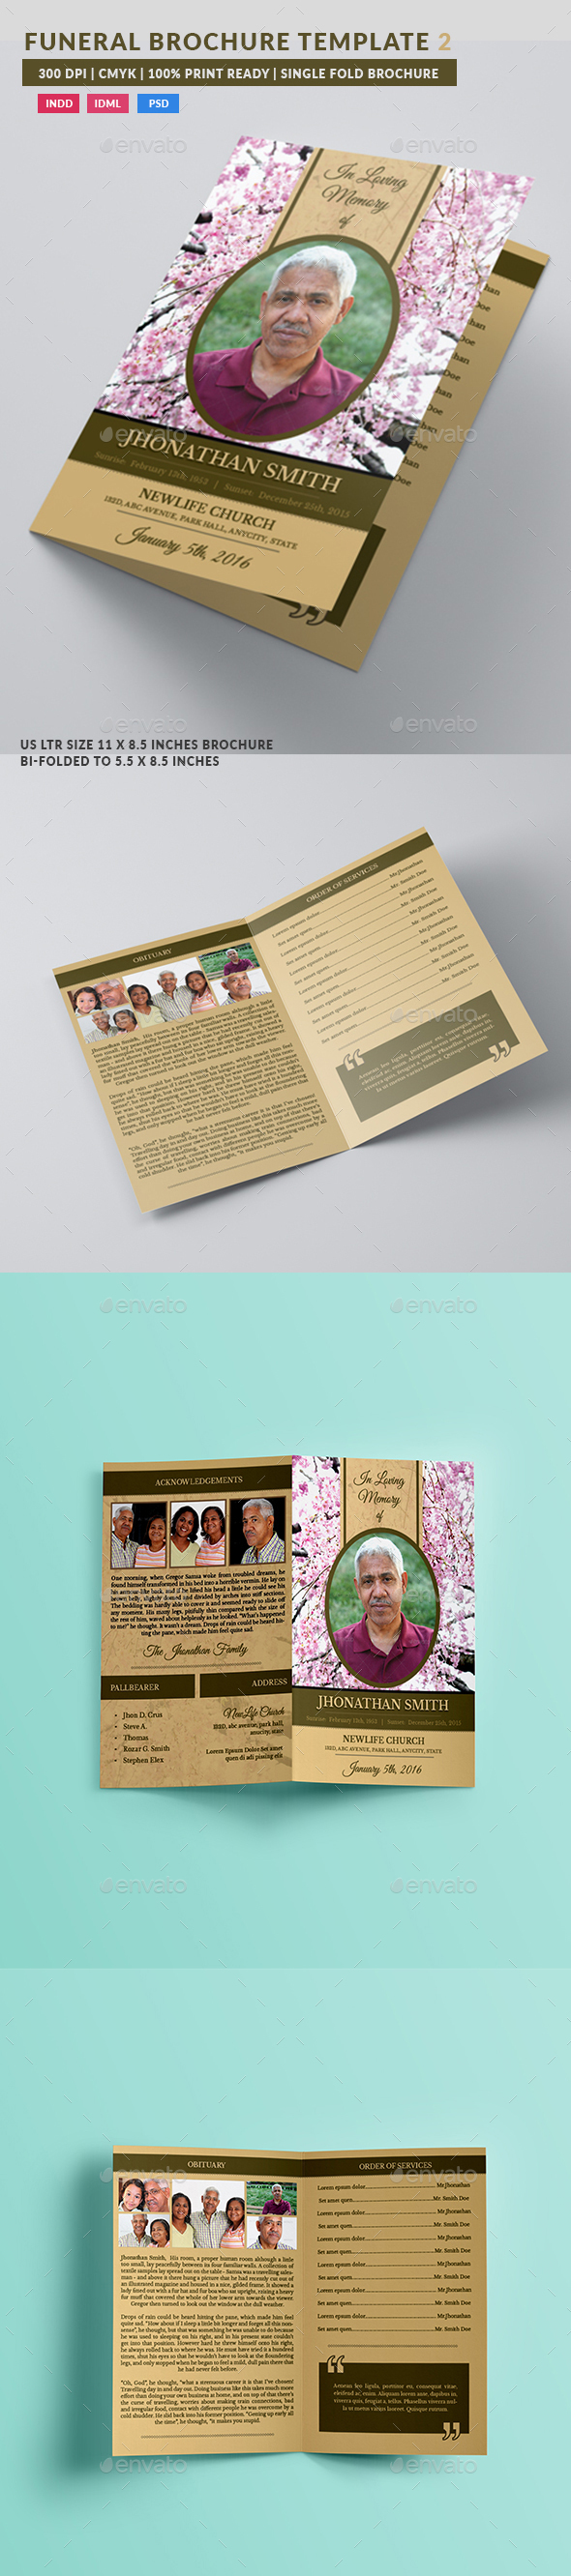 Cherry Blossom Funeral Indesign Brochure Template - Brochures Print Templates